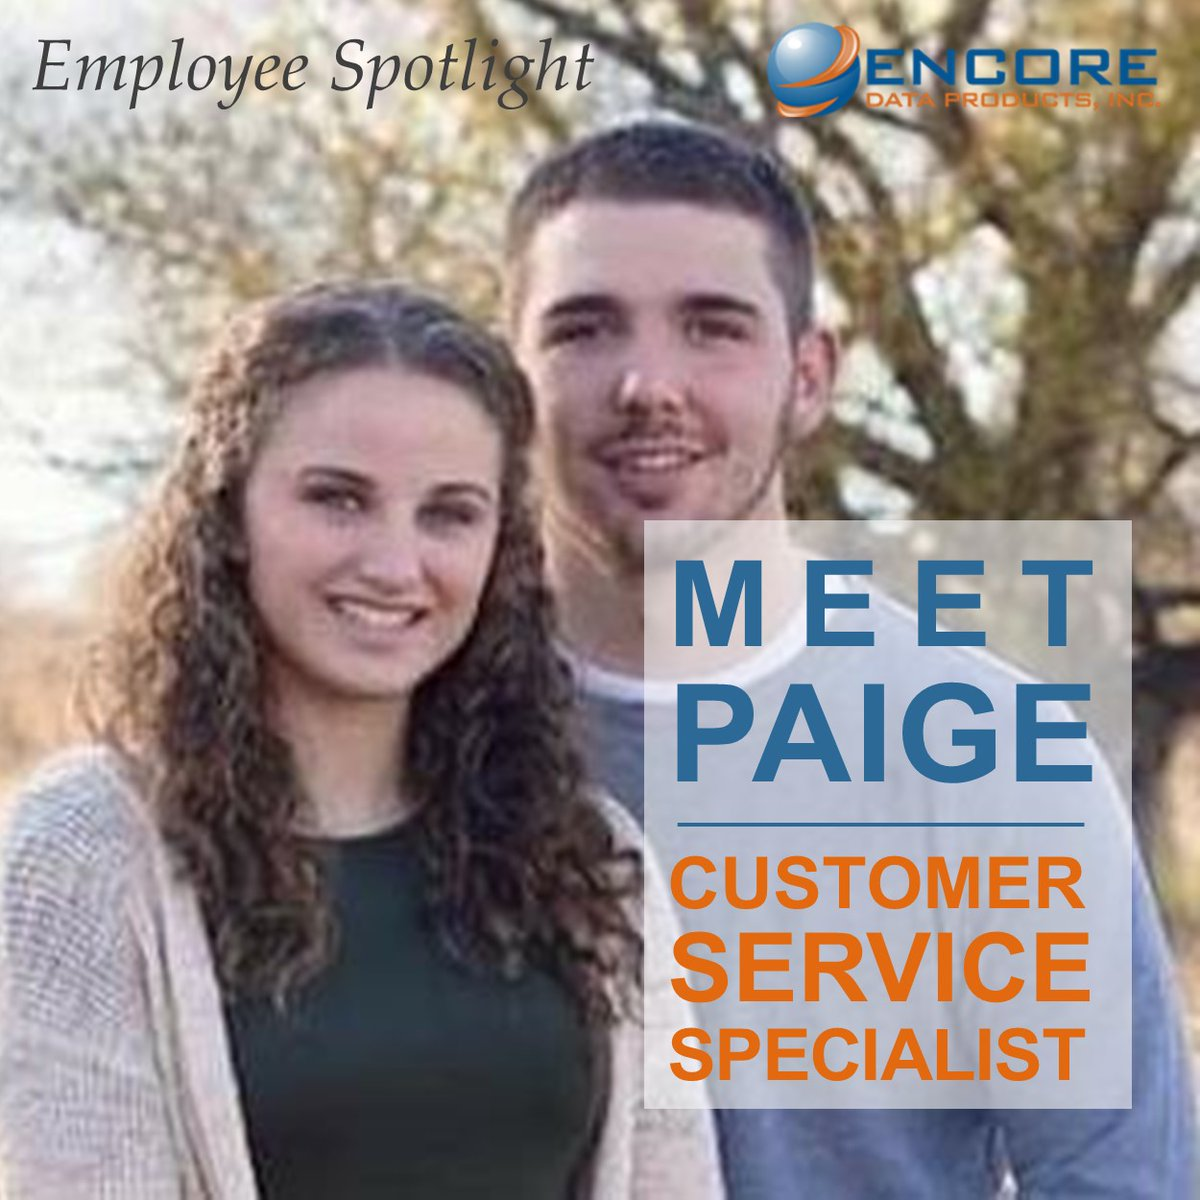 Meet Paige, Customer Service Specialist for Encore since 2020. She enjoys watching sports, spending time with her family and dog, and being outdoors. At Encore, Paige loves being around great people and working with friendly customers. We're so happy to have you on board, Paige! https://t.co/7PPTMh8Gdl